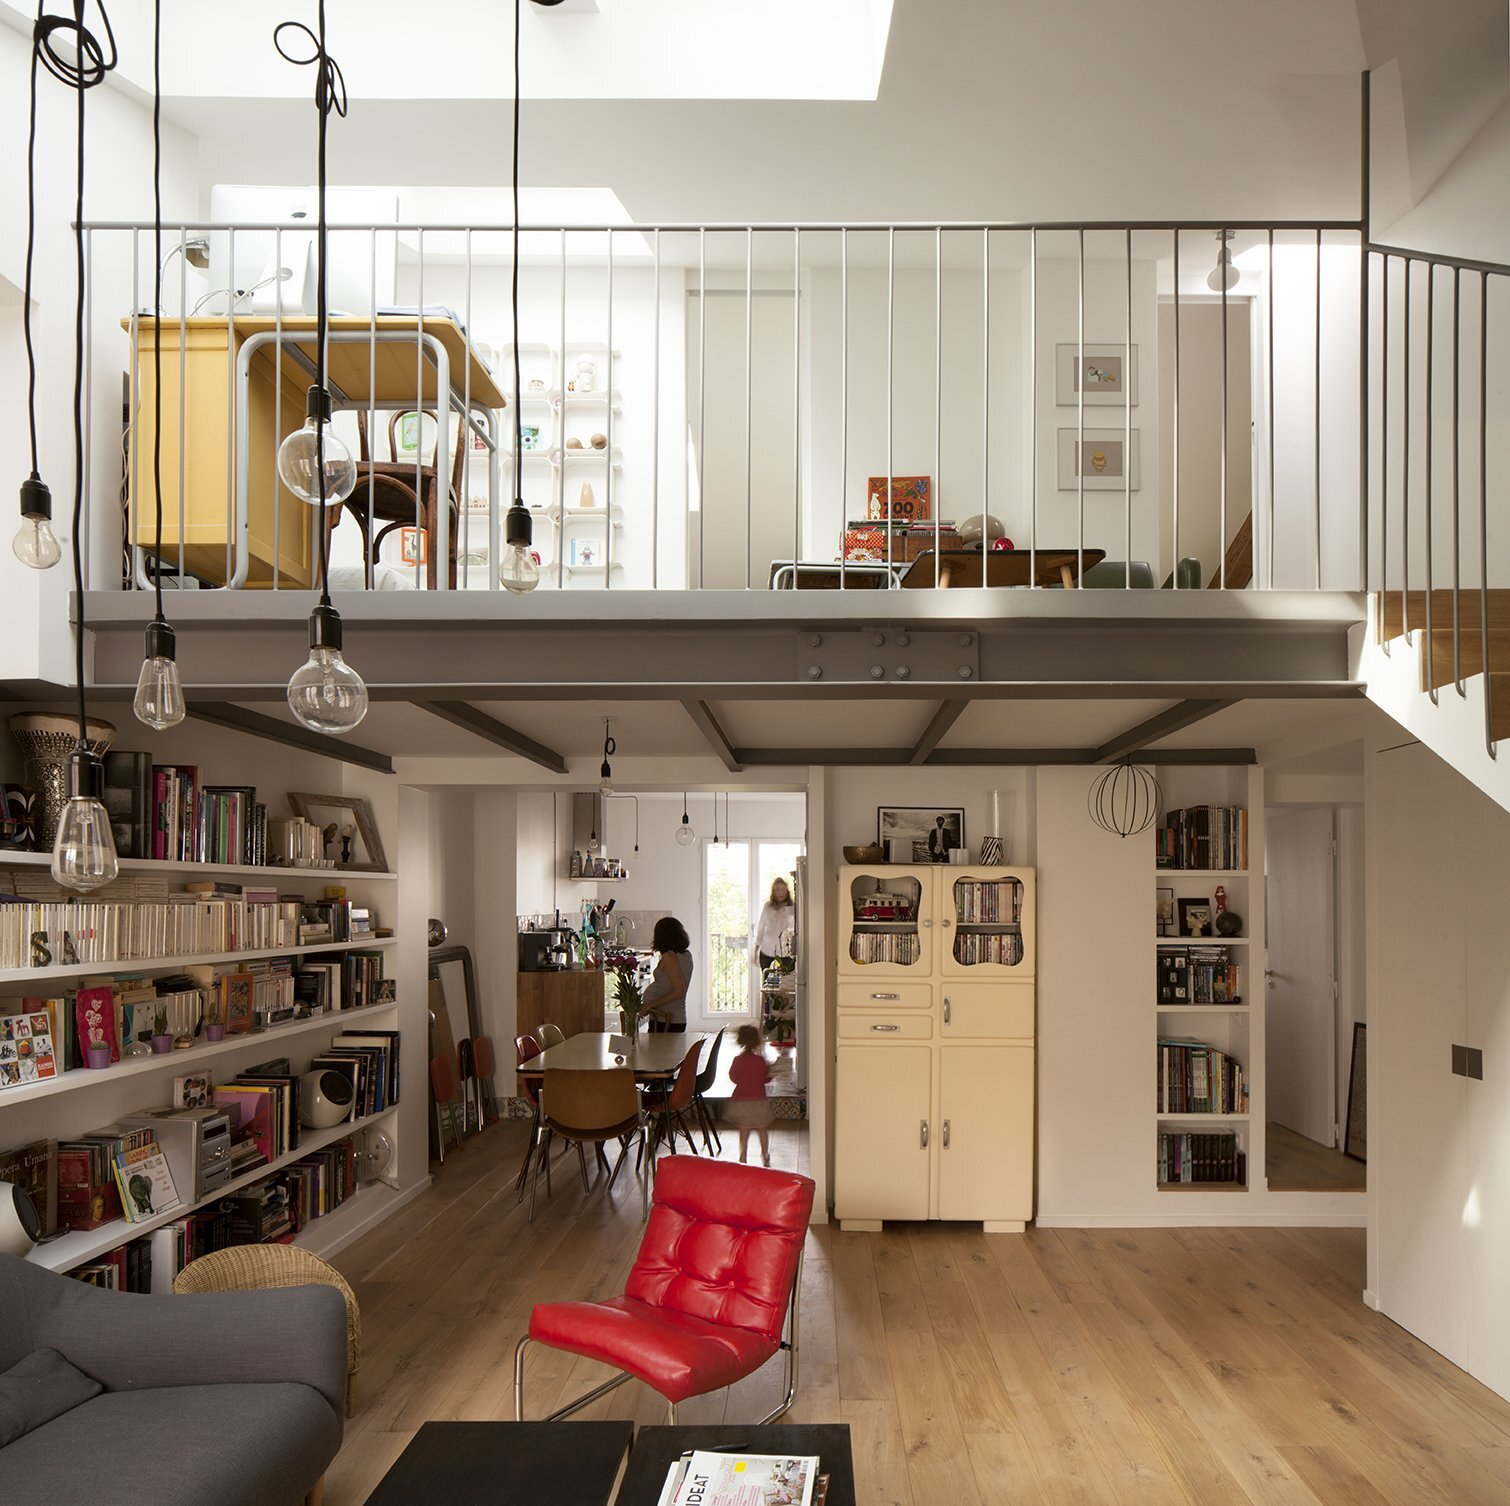 Parisian apartment opens attic to introduce more light - Foto mezzanine ...